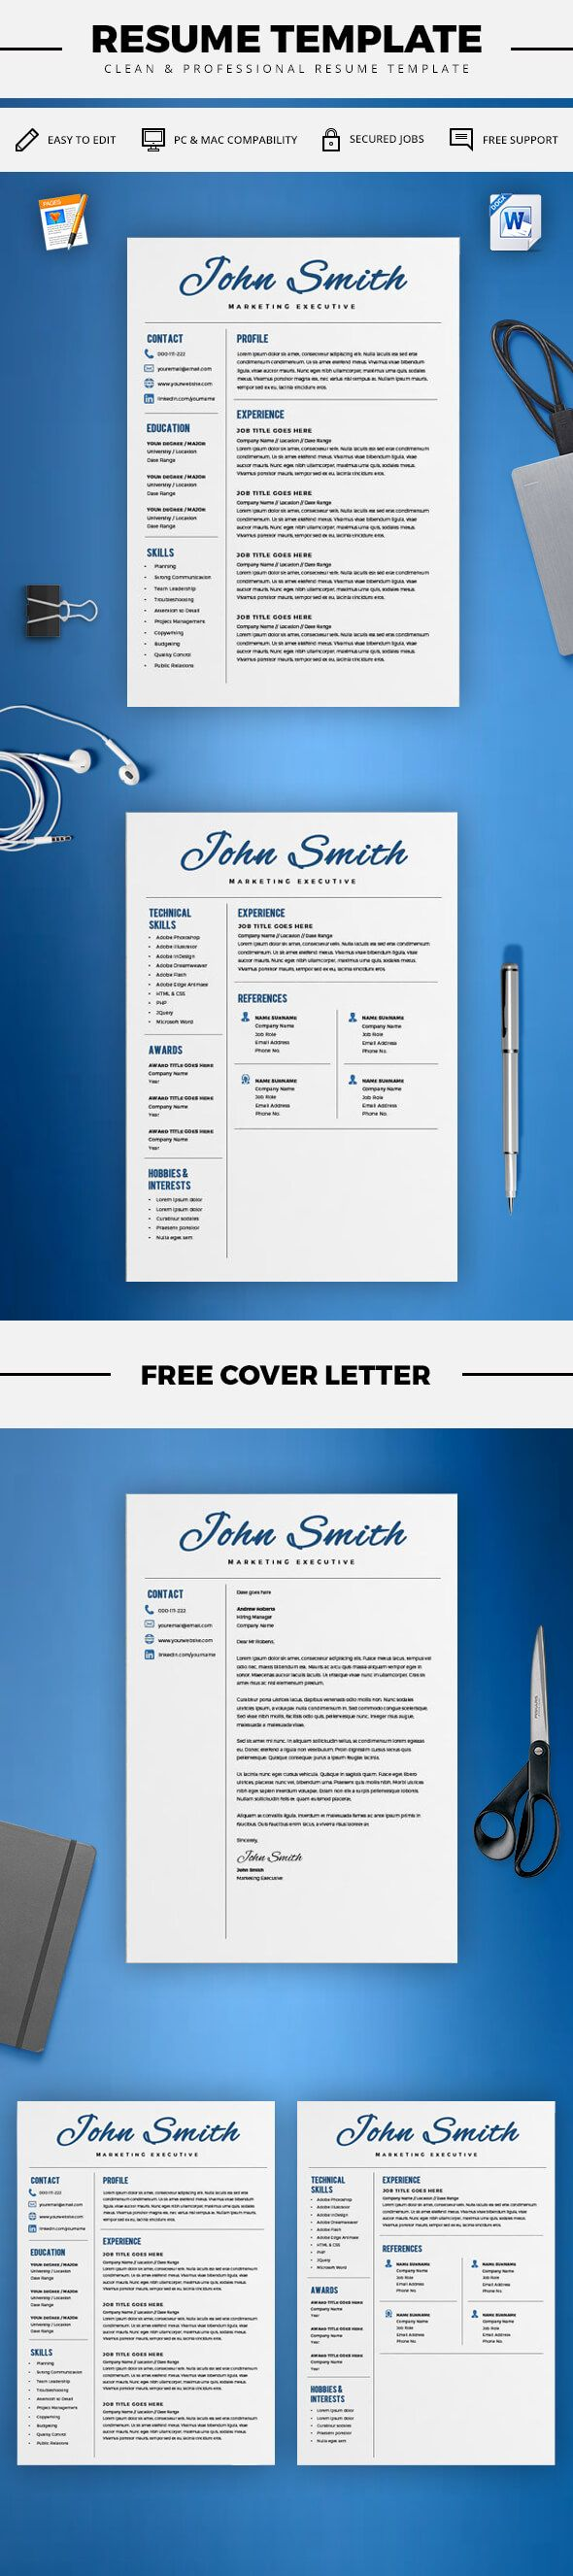 Nice 10 Steps To Creating A Resume Small 10 Words To Put On Your Resume Round 100 Greatest Resume Words 100 Resume Words Youthful 10x10 Grid Template Dark12 Tab Divider Template 25  Best Ideas About Resume Template Free On Pinterest | Free ..